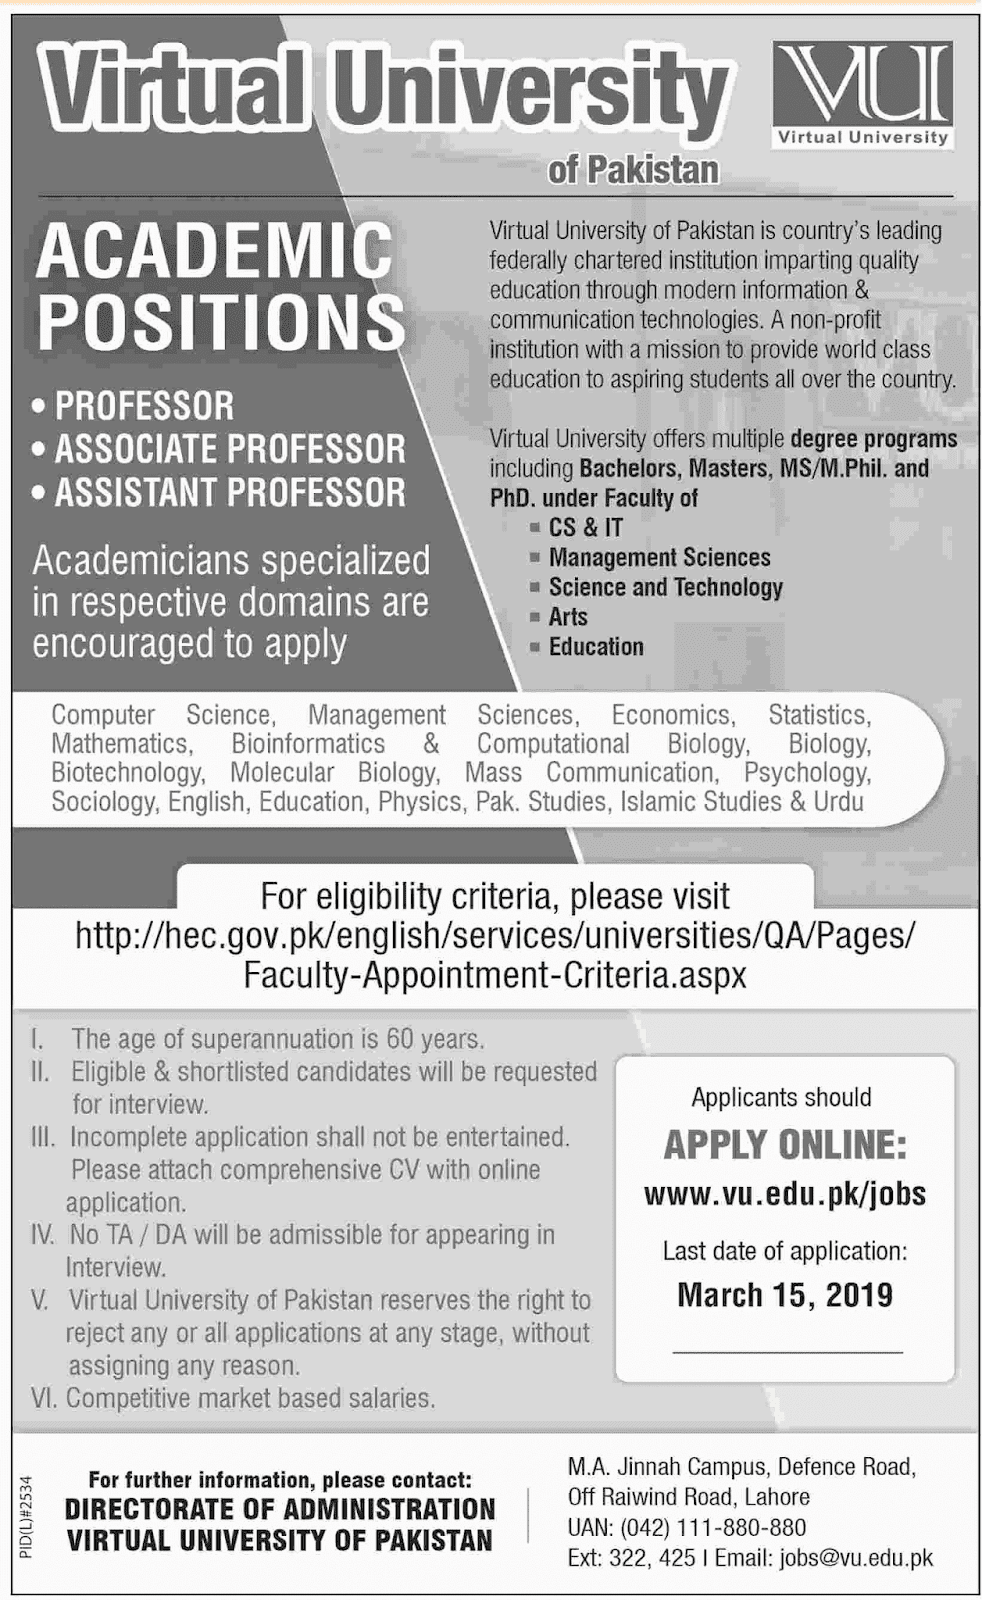 Advertisement for Virtual University of Pakistan Jobs